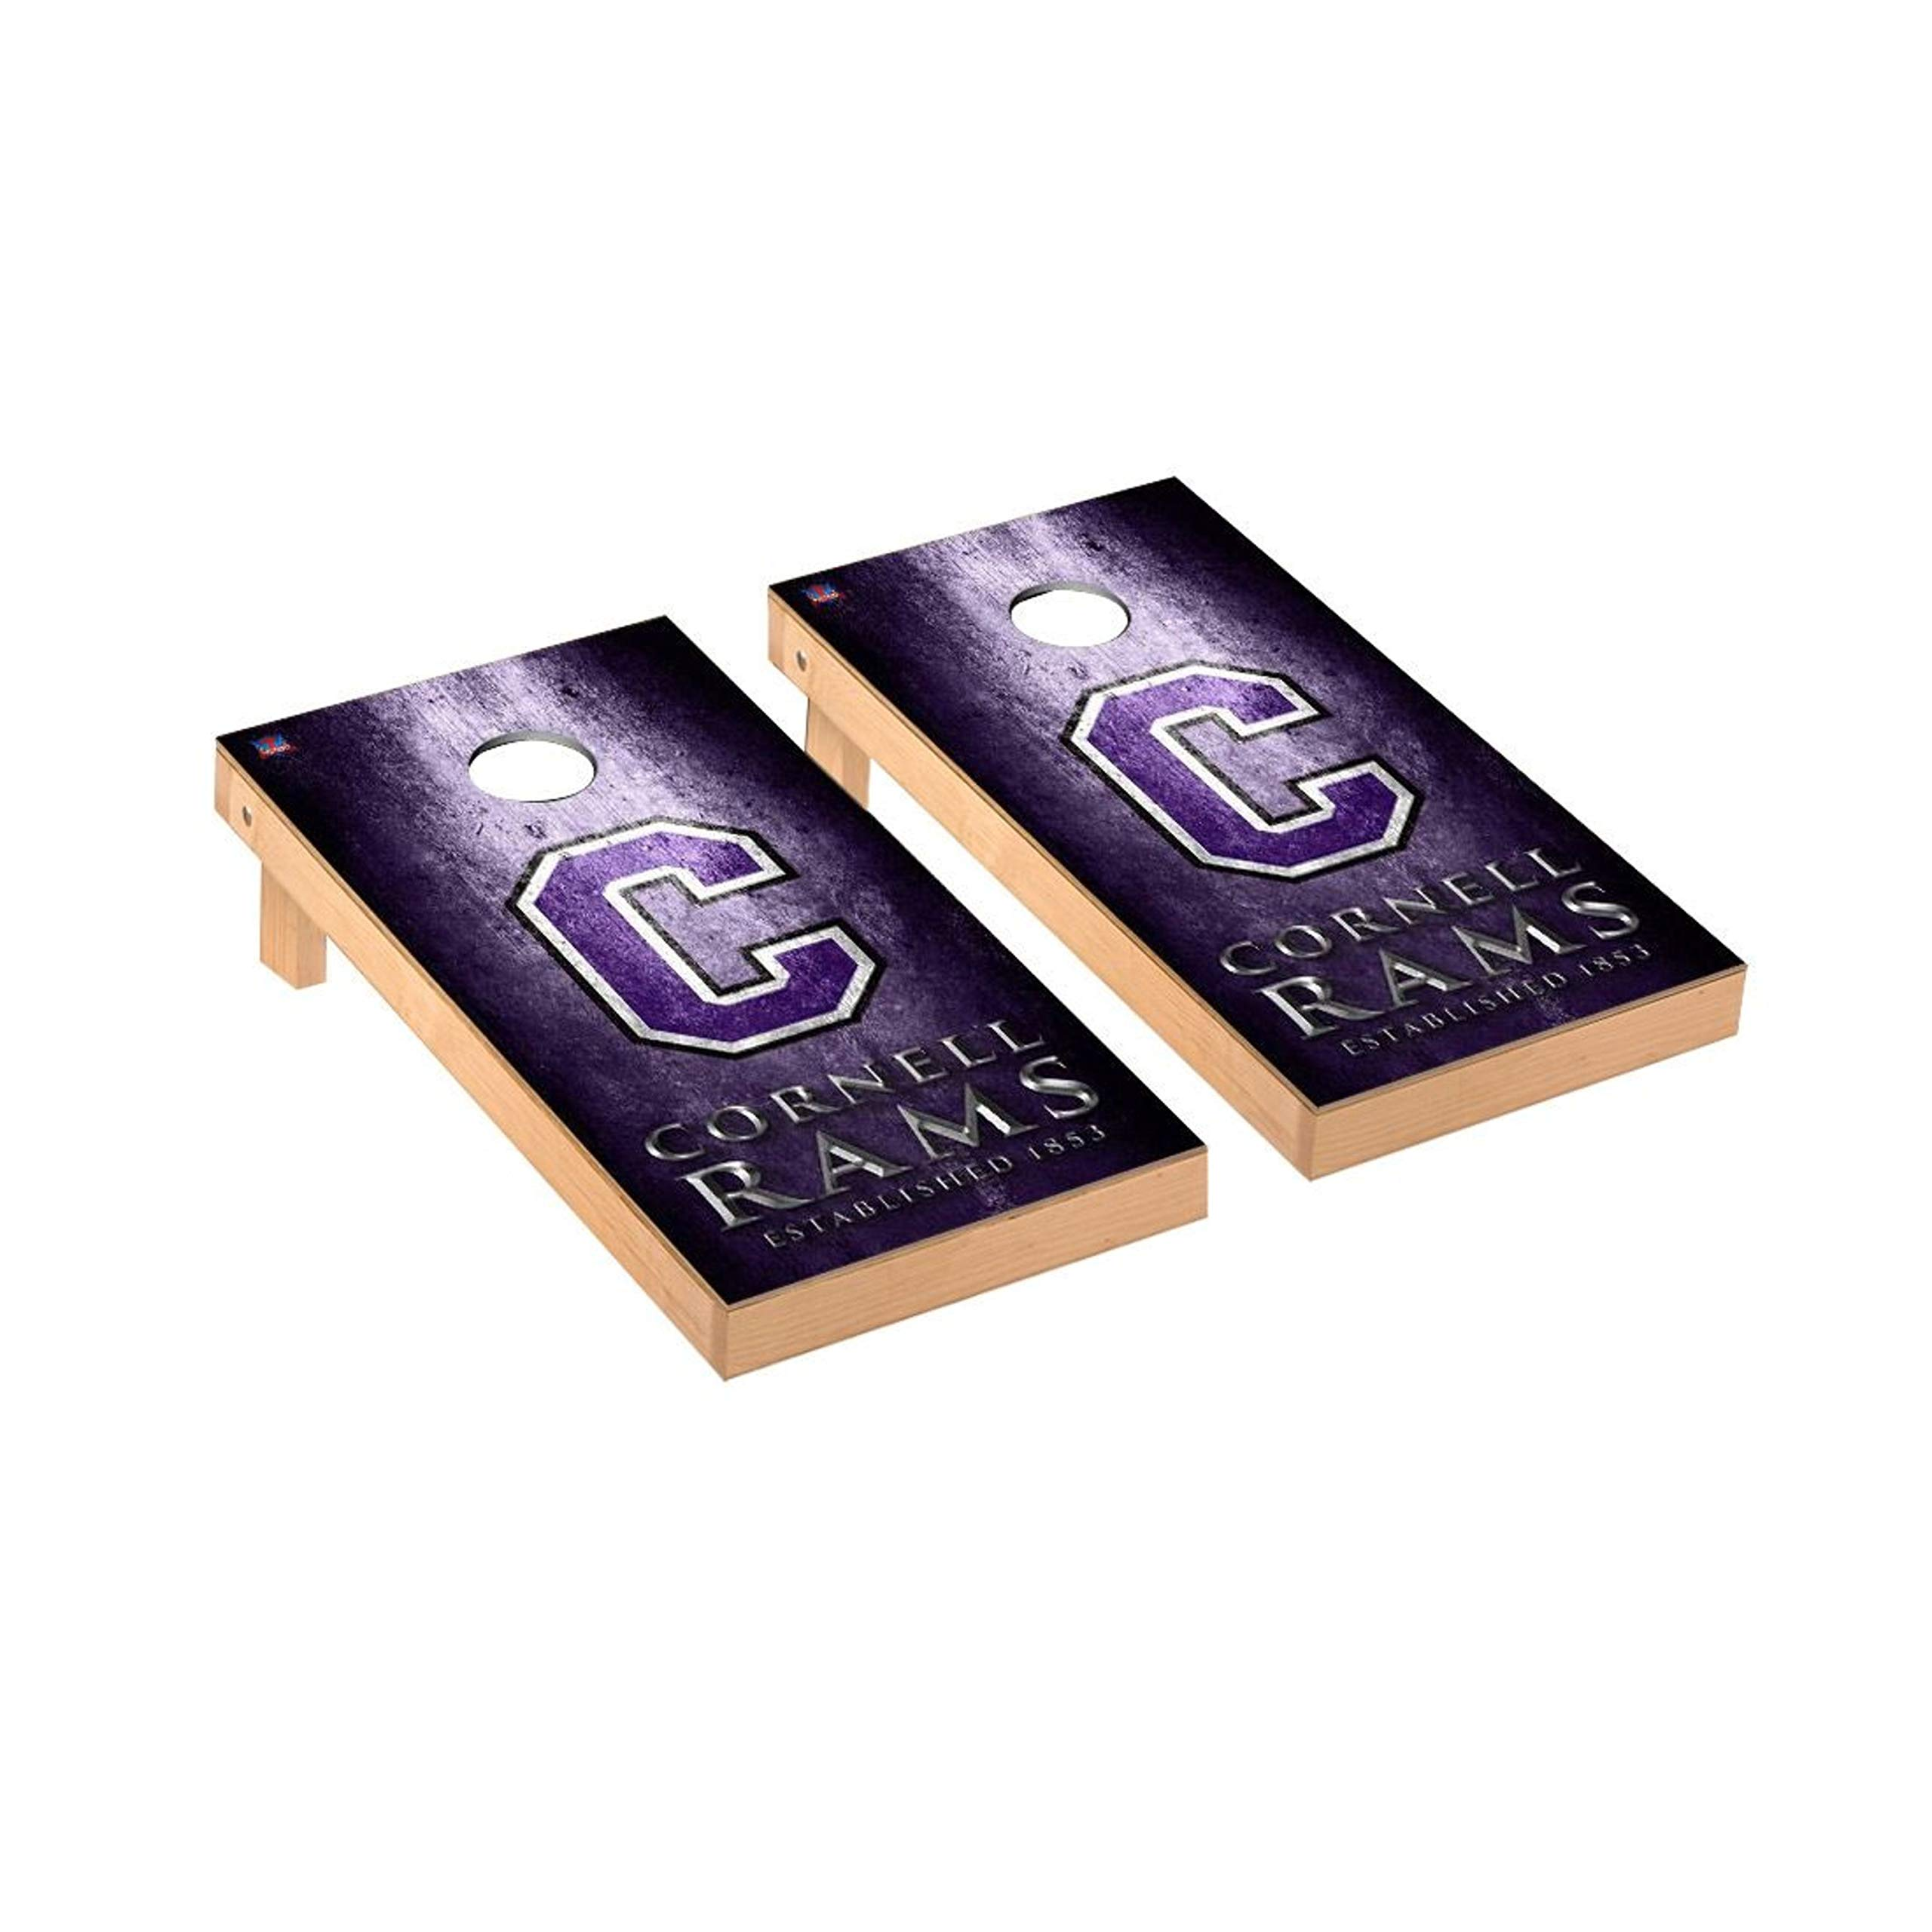 Victory Tailgate Regulation Collegiate NCAA Museum Series Cornhole Board Set - 2 Boards, 8 Bags - Cornell College Rams by Victory Tailgate